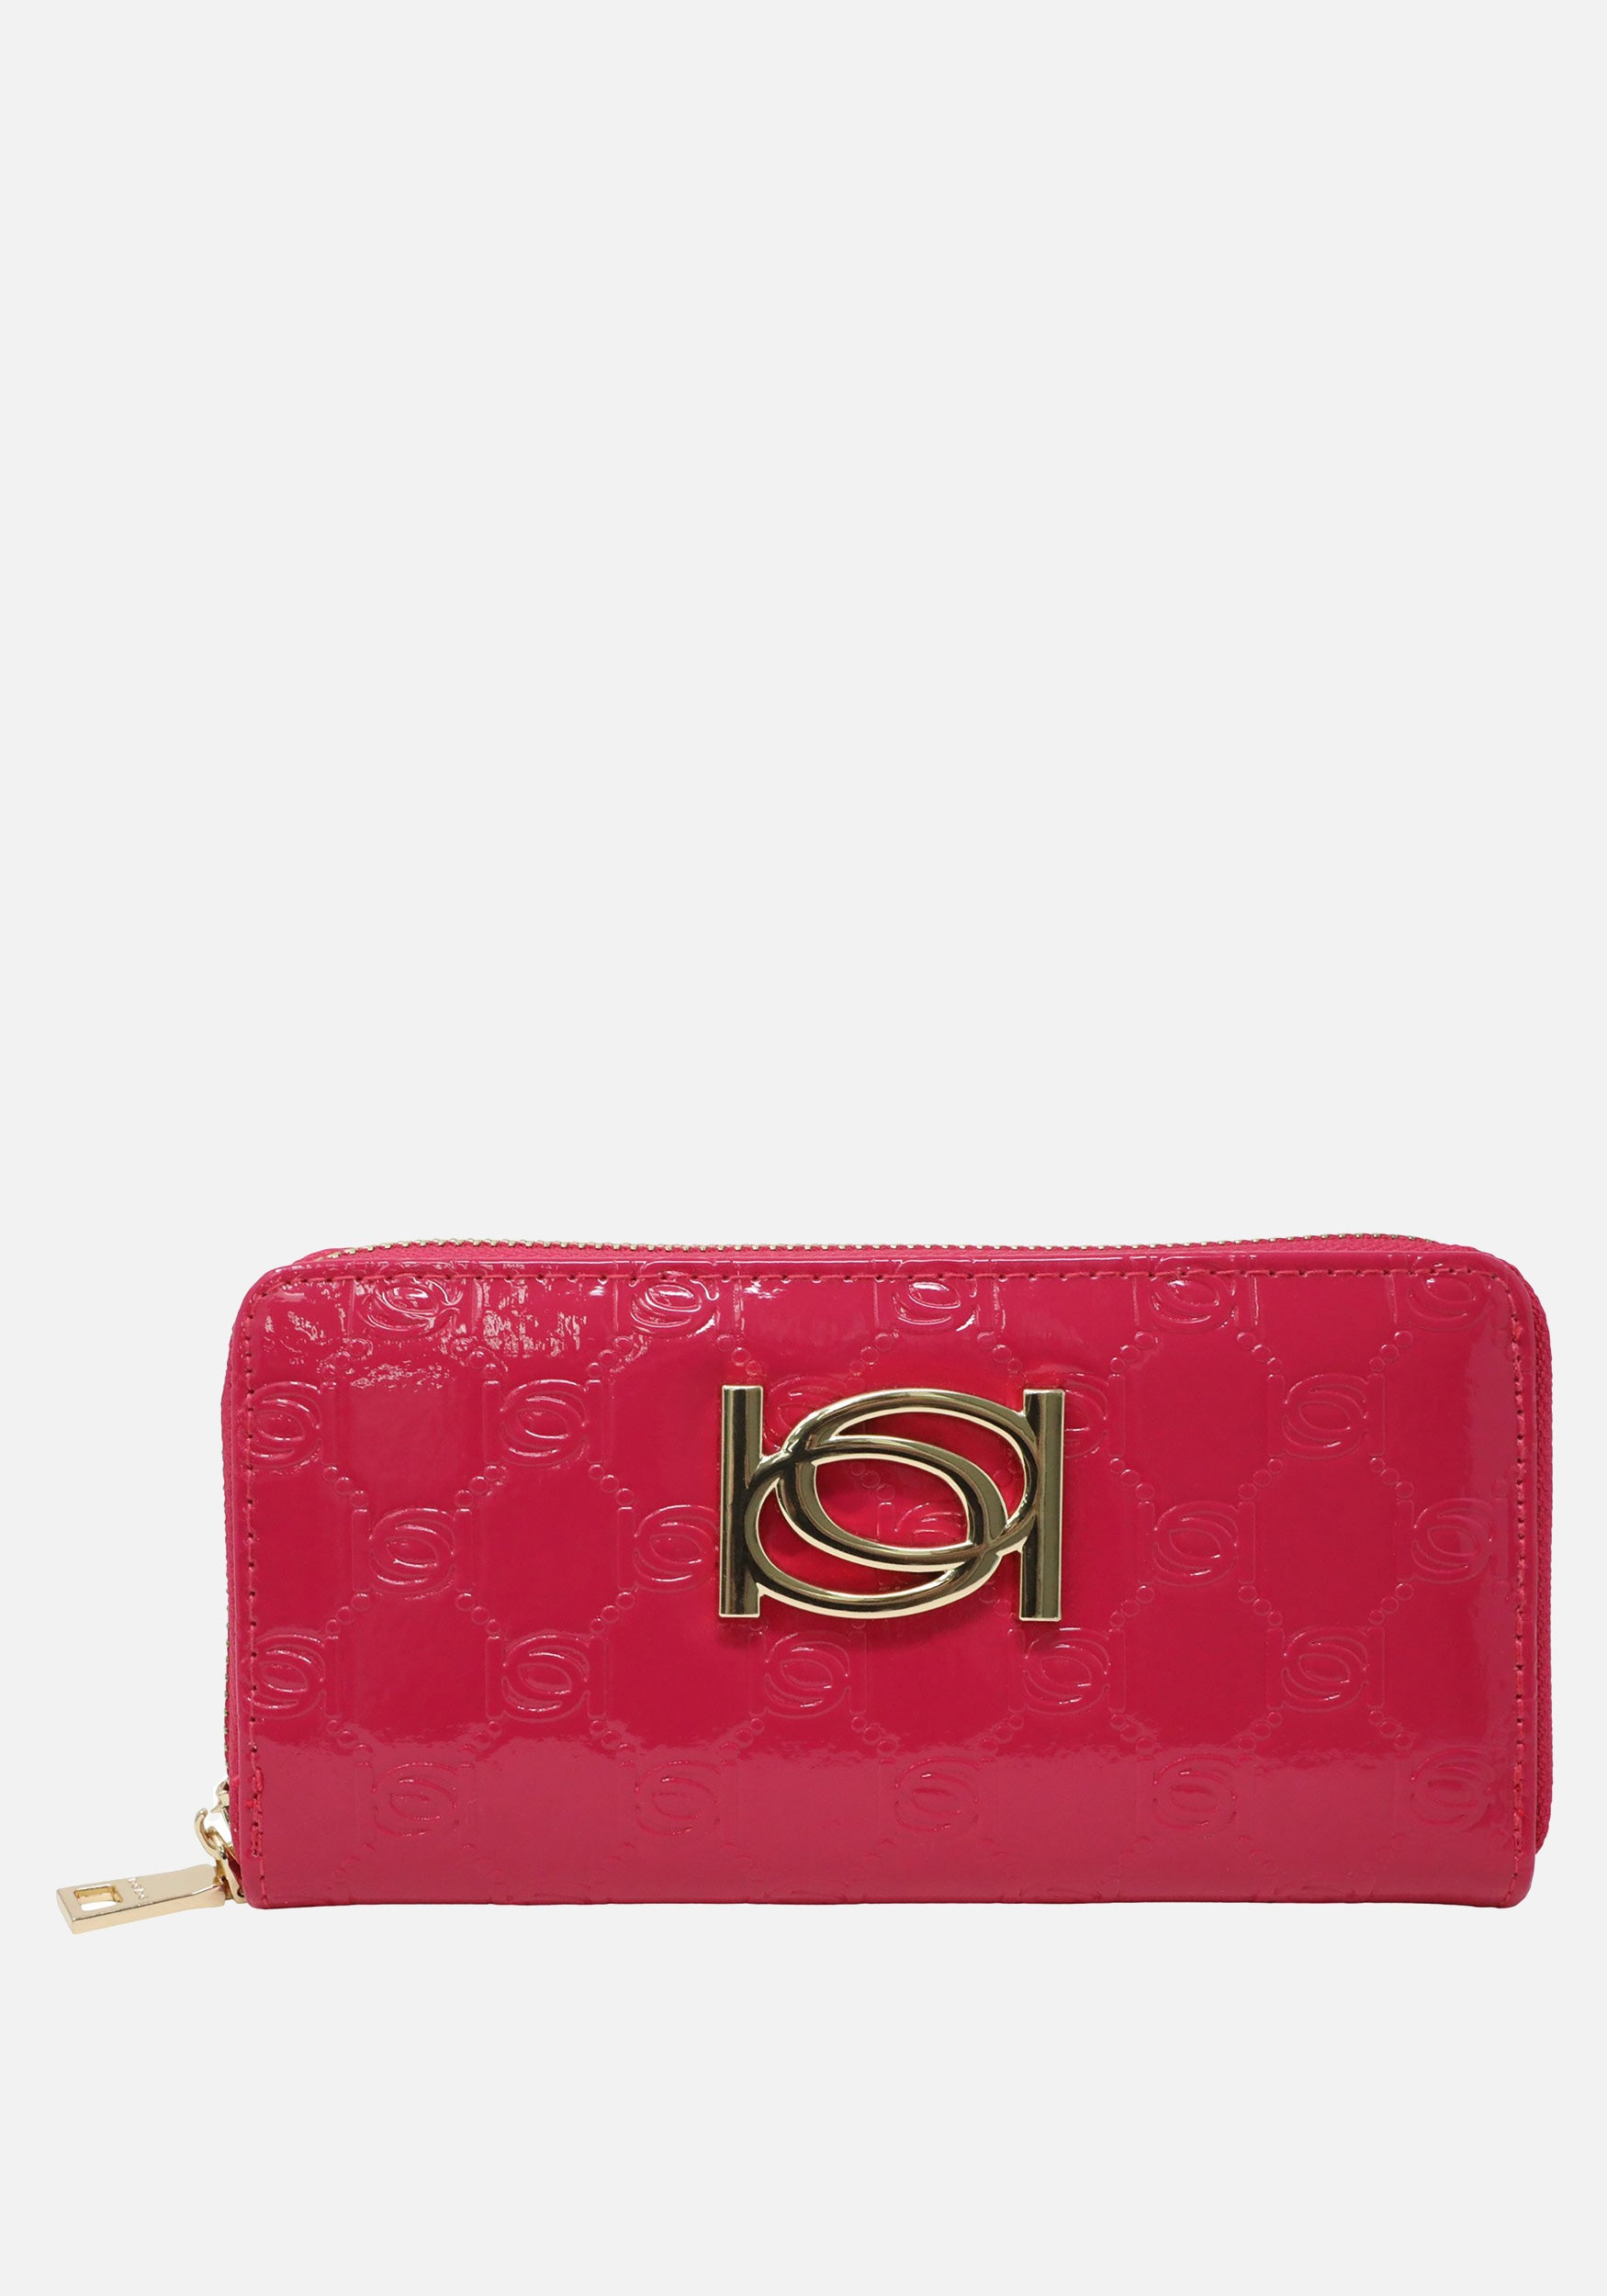 Bebe Women's Esme Patent Popped Monogram Wallet in Fushia Polyester